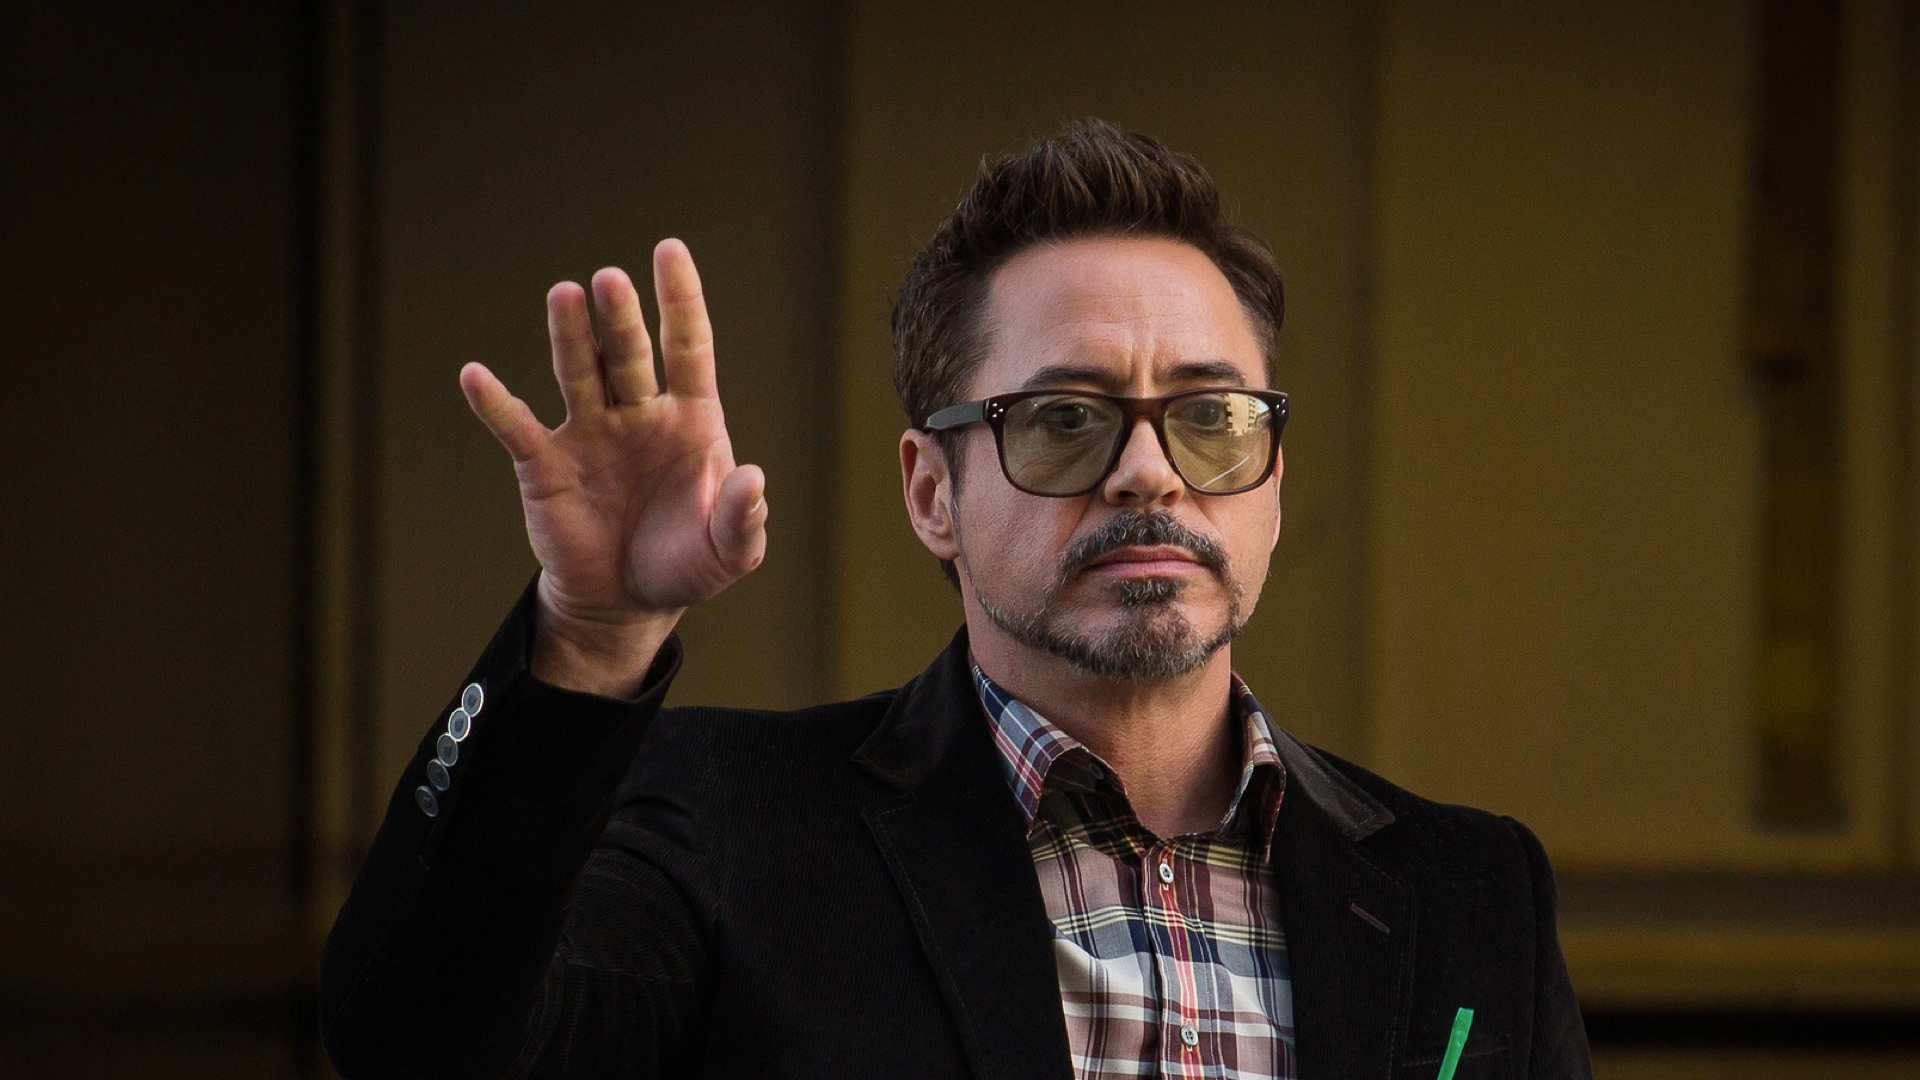 10 Things You Didn't Know About Robert Downey Jr. | RDJ hopes to win an Oscar someday